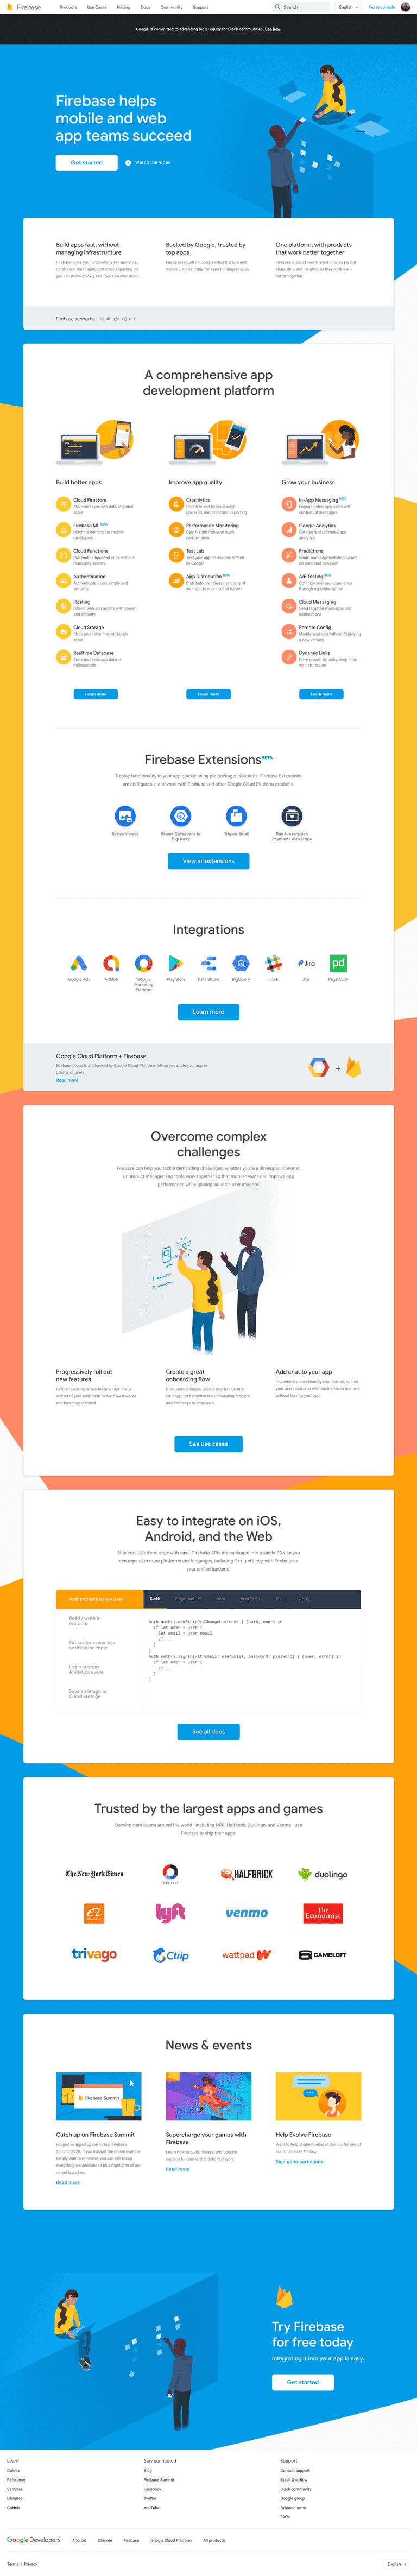 Firebase homepage screenshot